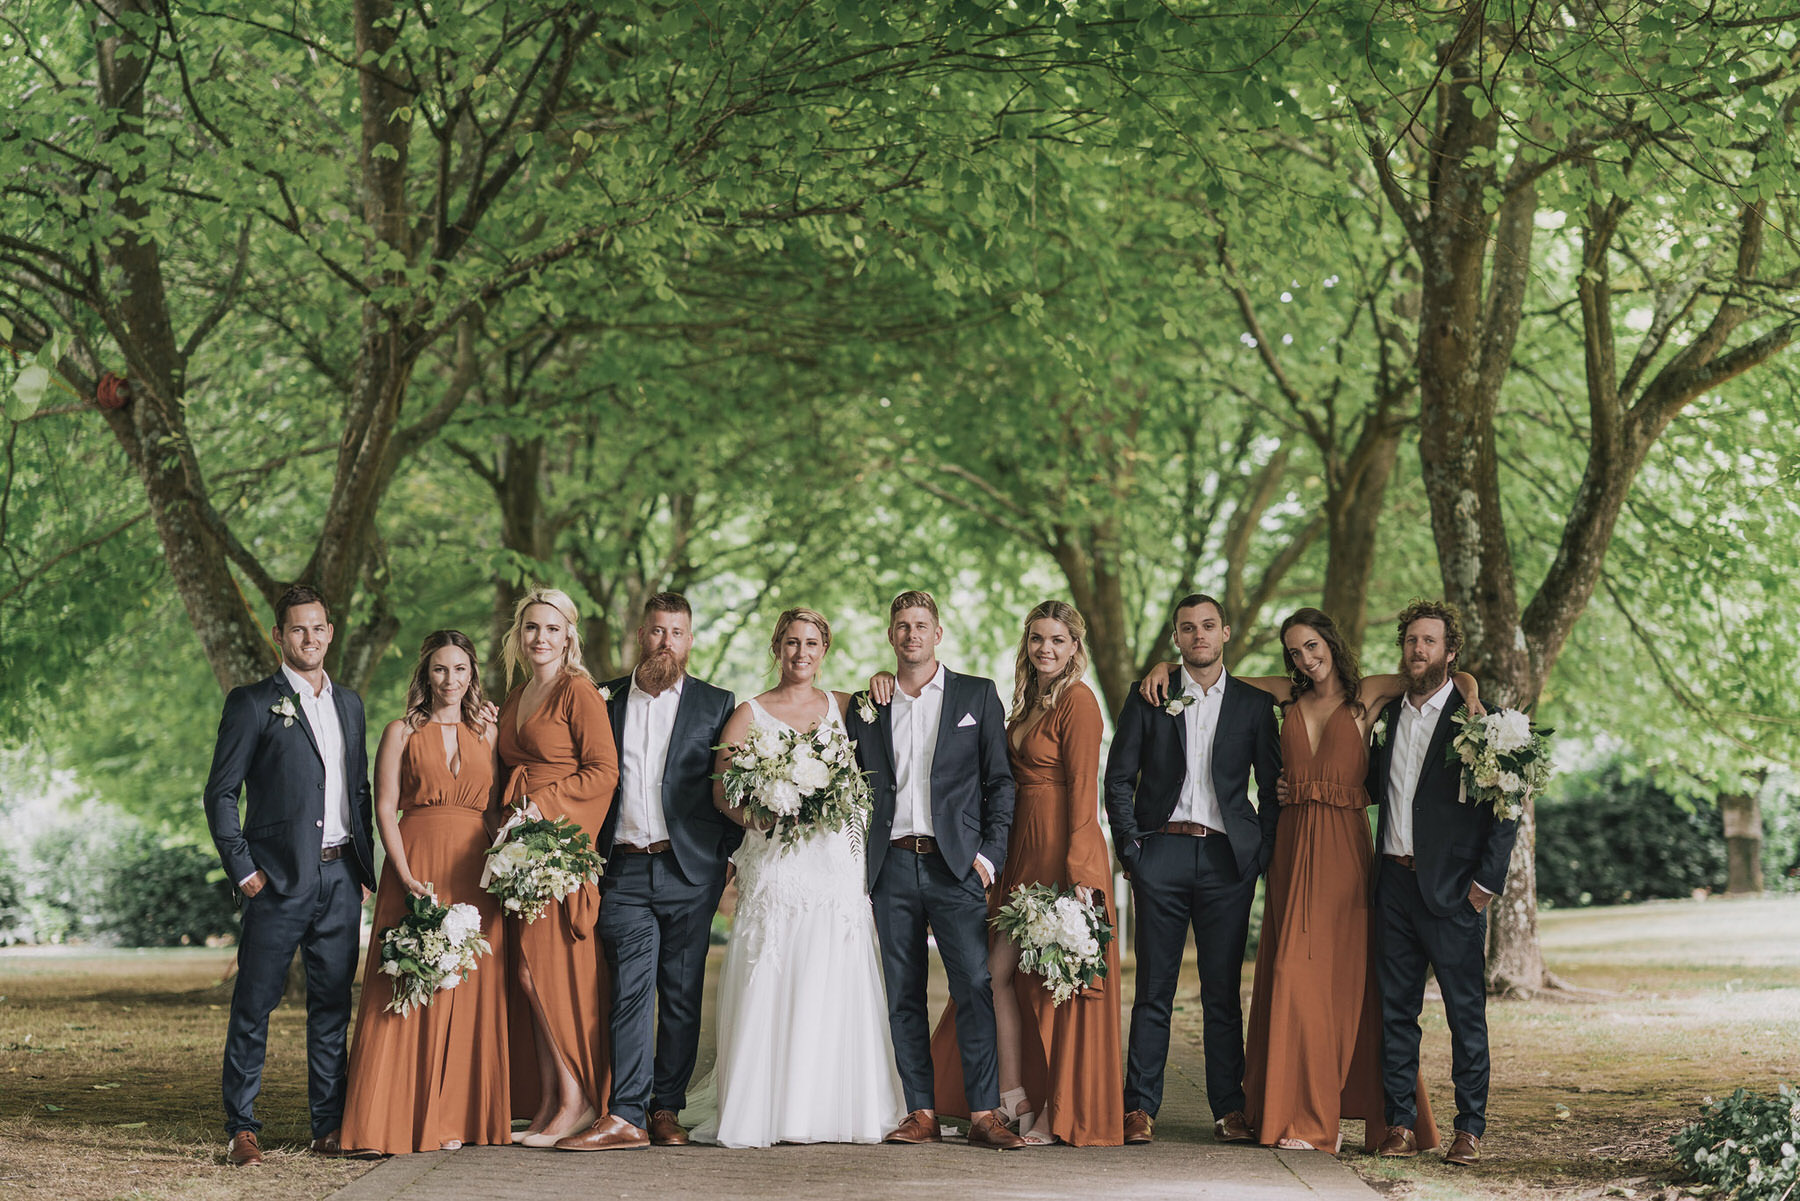 On My Hand wedding flowers - real wedding portfolio - Abbey and Ash - bridal party pose with bouquets and buttonholes